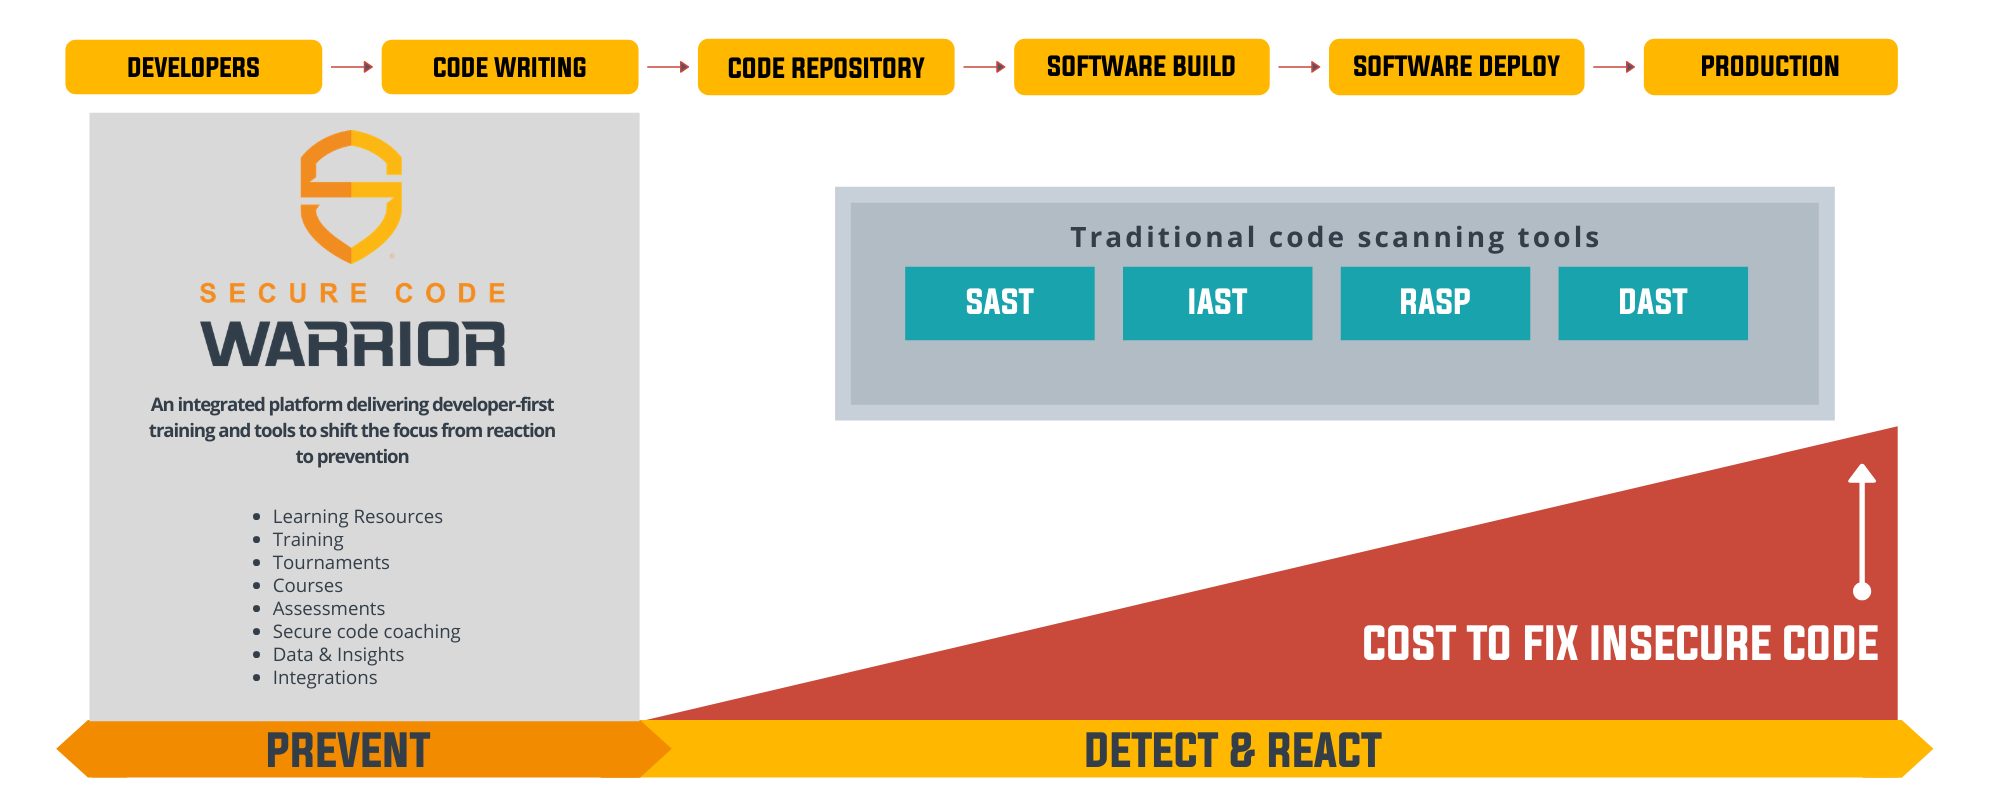 Current application security tools focus on moving from right to left in the Software Development Life Cycle (SDLC) – an approach that supports detection and reaction – detect the vulnerabilities in the written code and react to fix them. Secure Code Warrior starts at the extreme left of the SDLC with a focus on making the developer the first line of defense in their organization and preventing vulnerabilities in the first place.